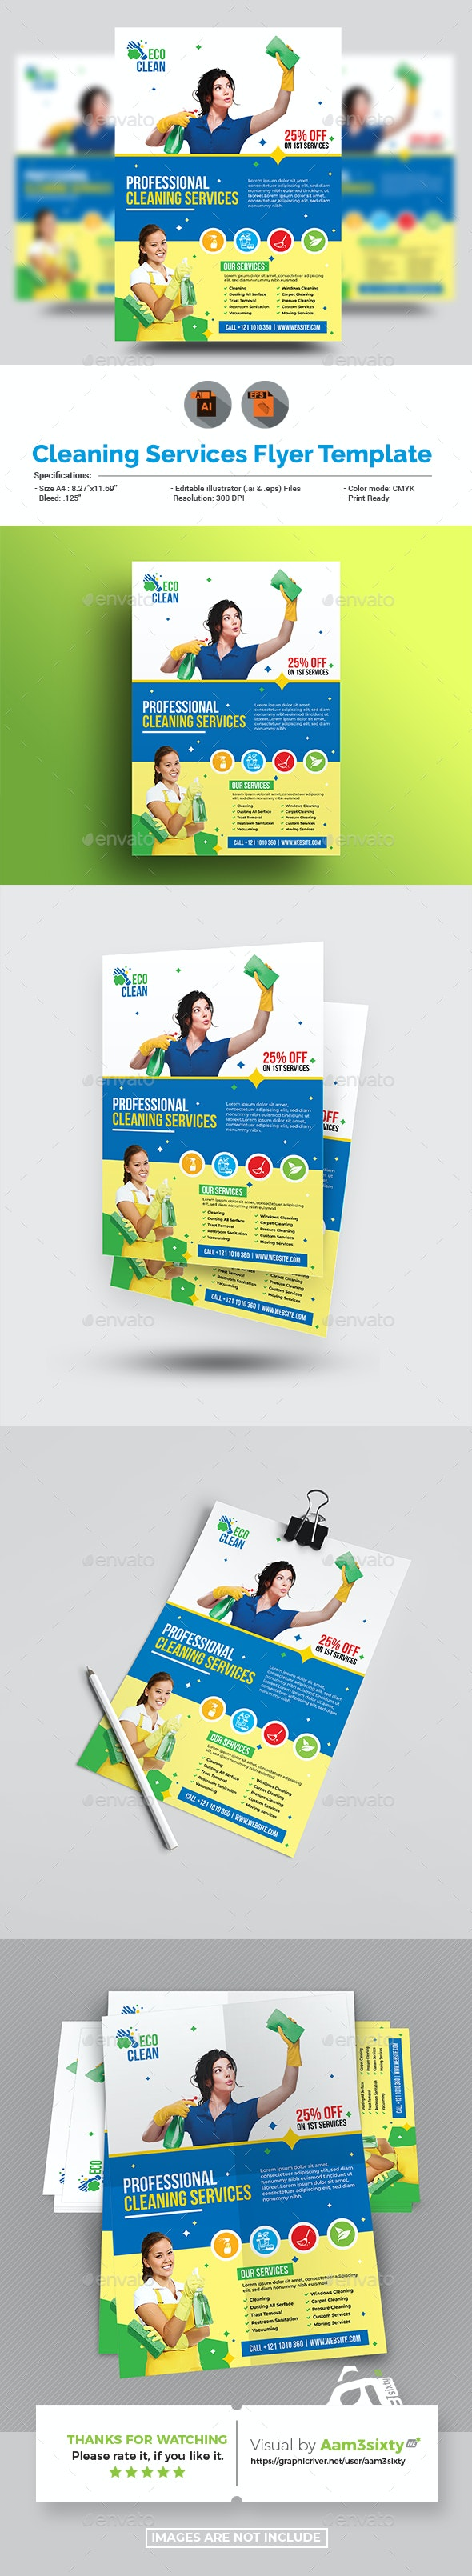 Cleaning Service Flyer Template - Commerce Flyers